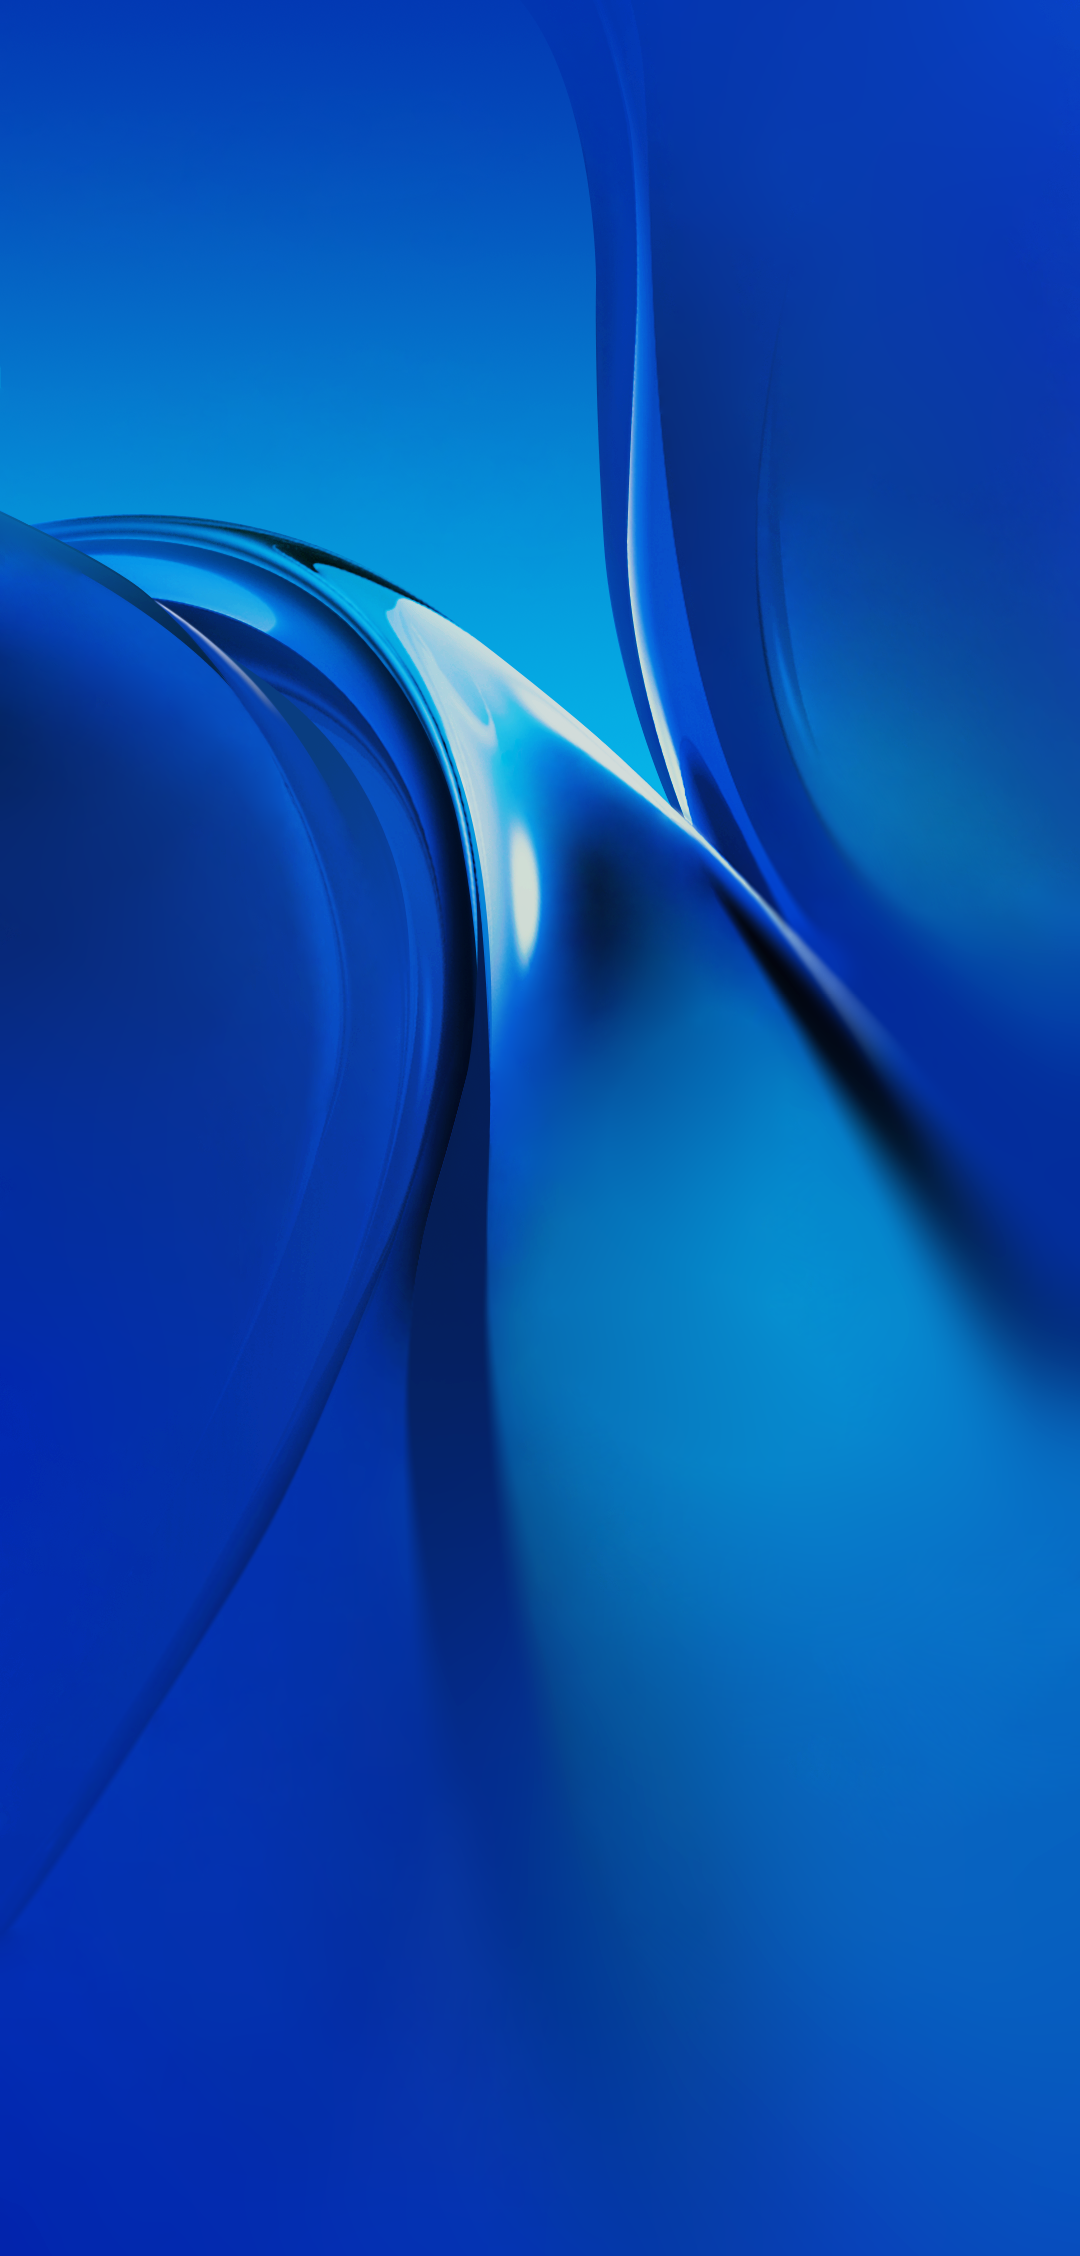 Vivo V17 Pro Wallpaper Ytechb Exclusive In 2020 Samsung Wallpaper Galaxy Phone Wallpaper Android Phone Wallpaper